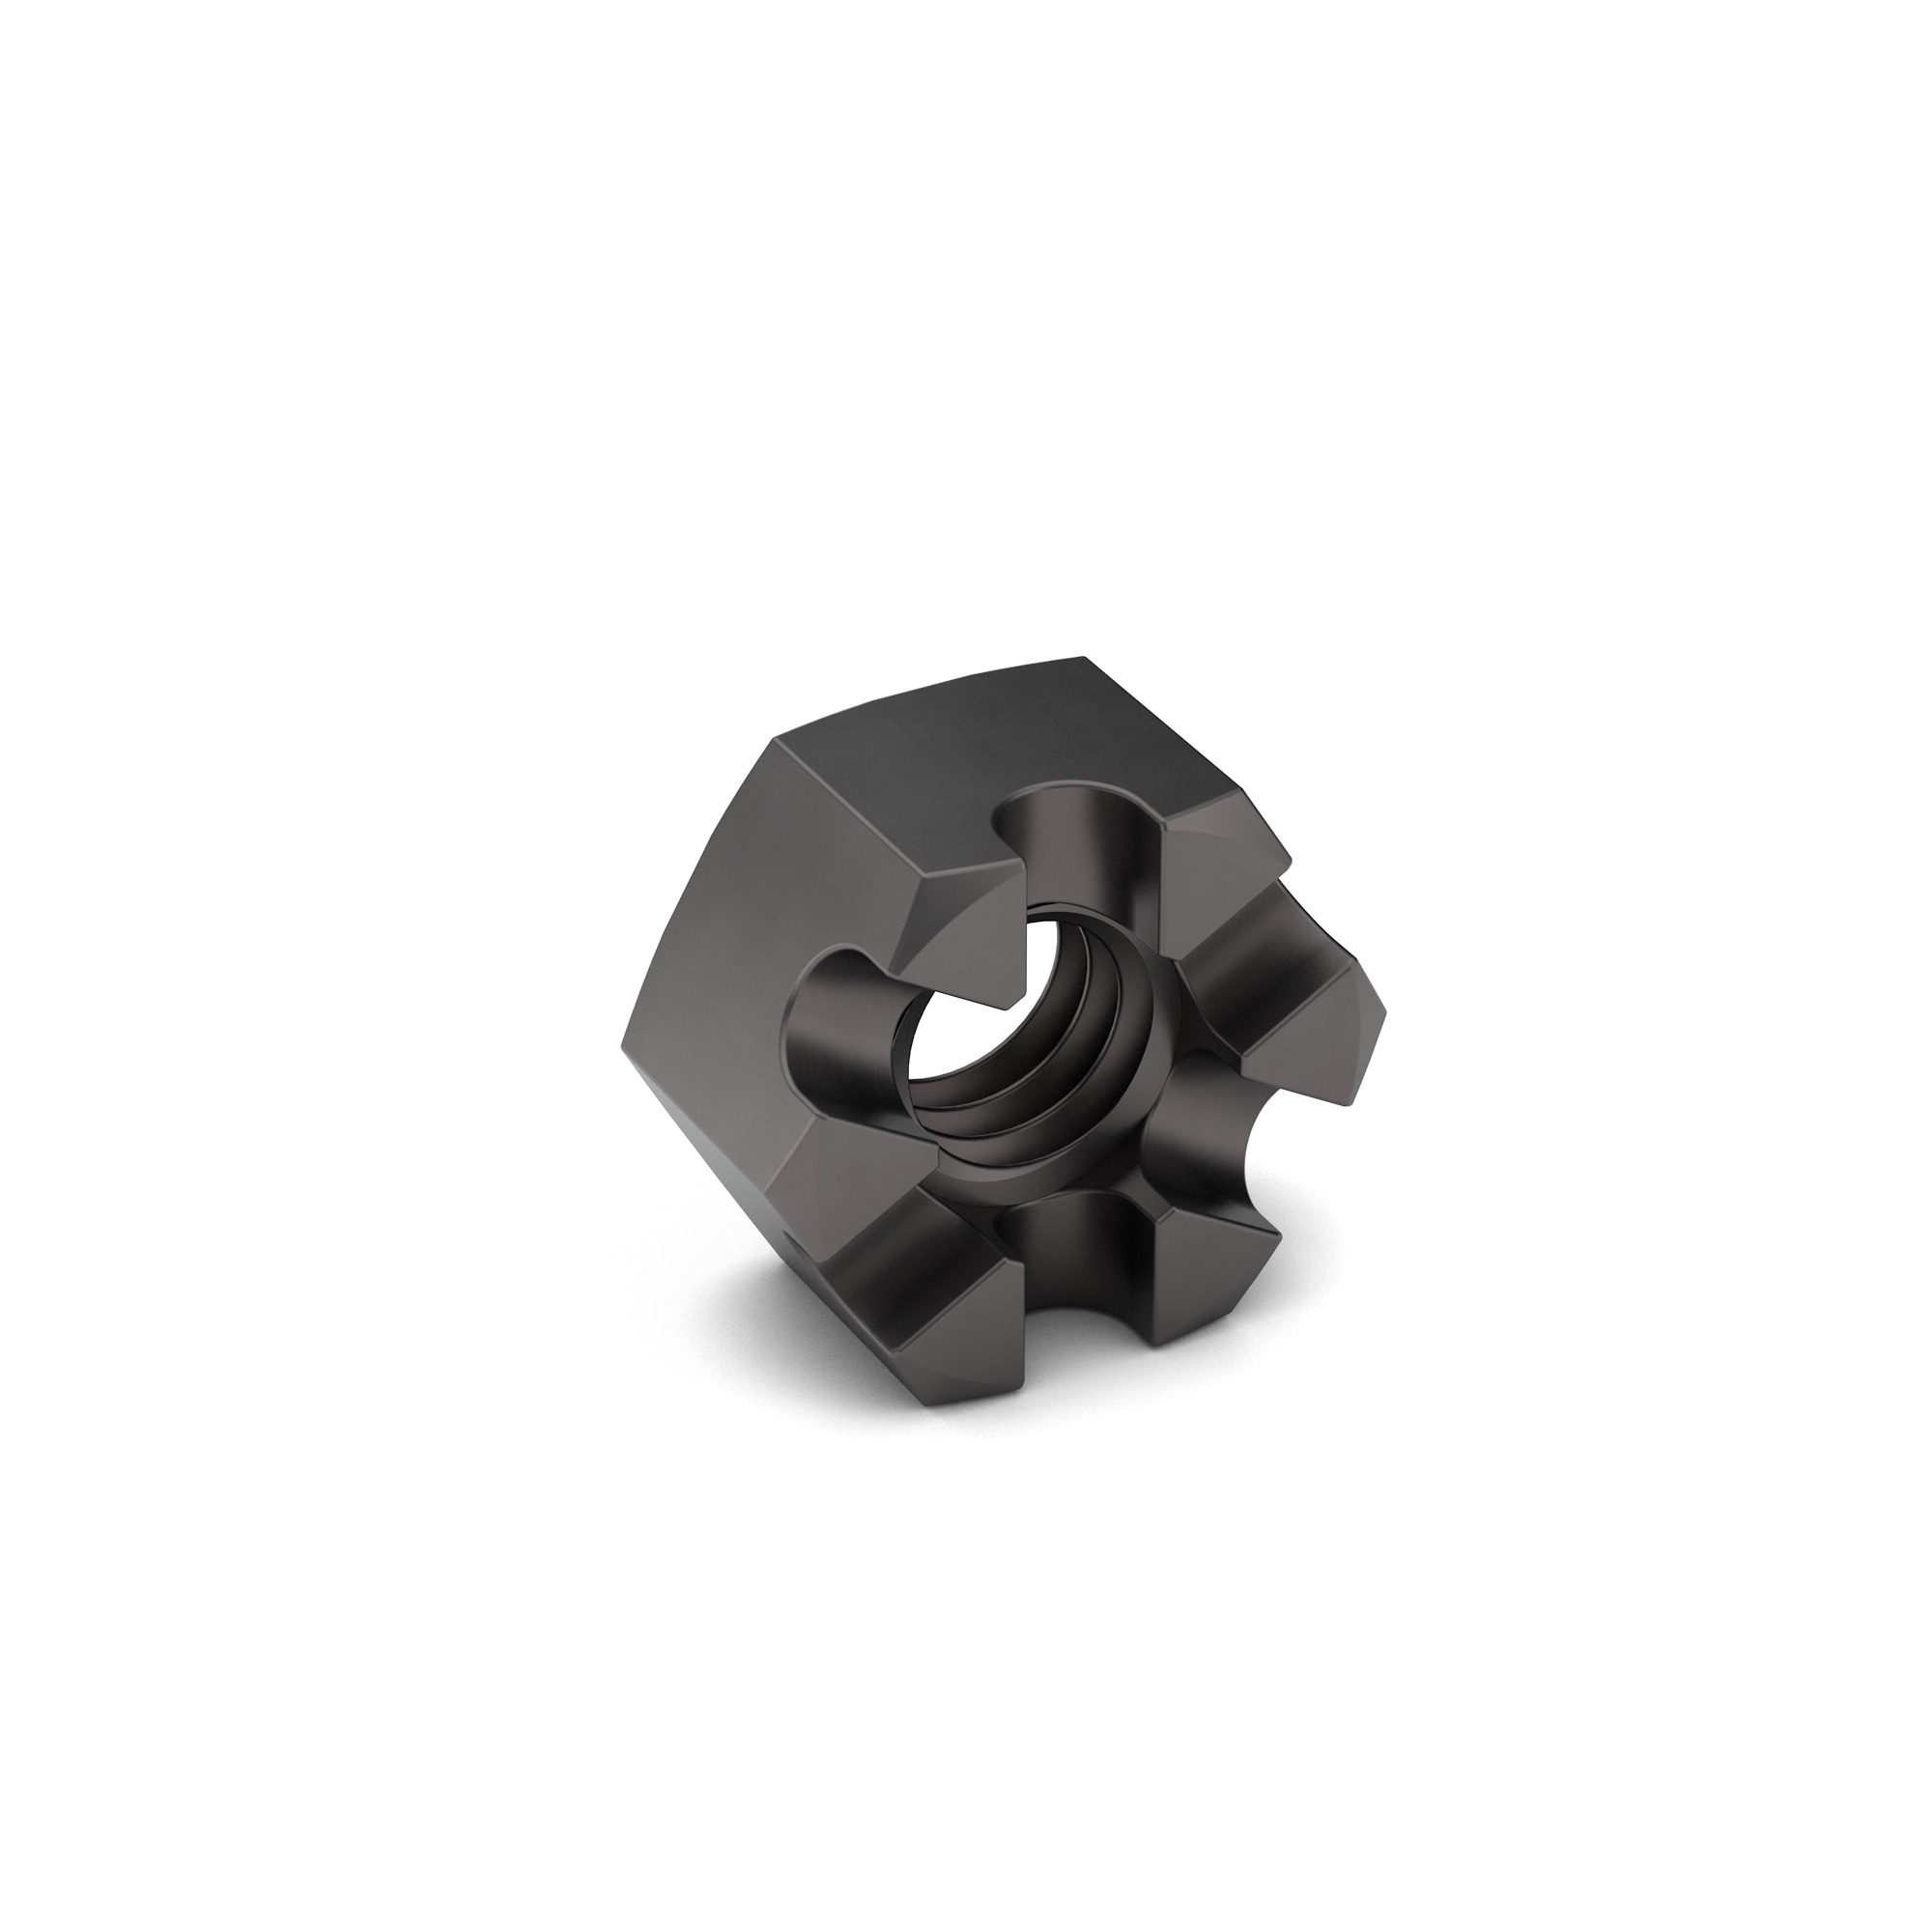 1/4-20 J995 GR 2 Slotted Hex Nut Zinc Clear Trivalent